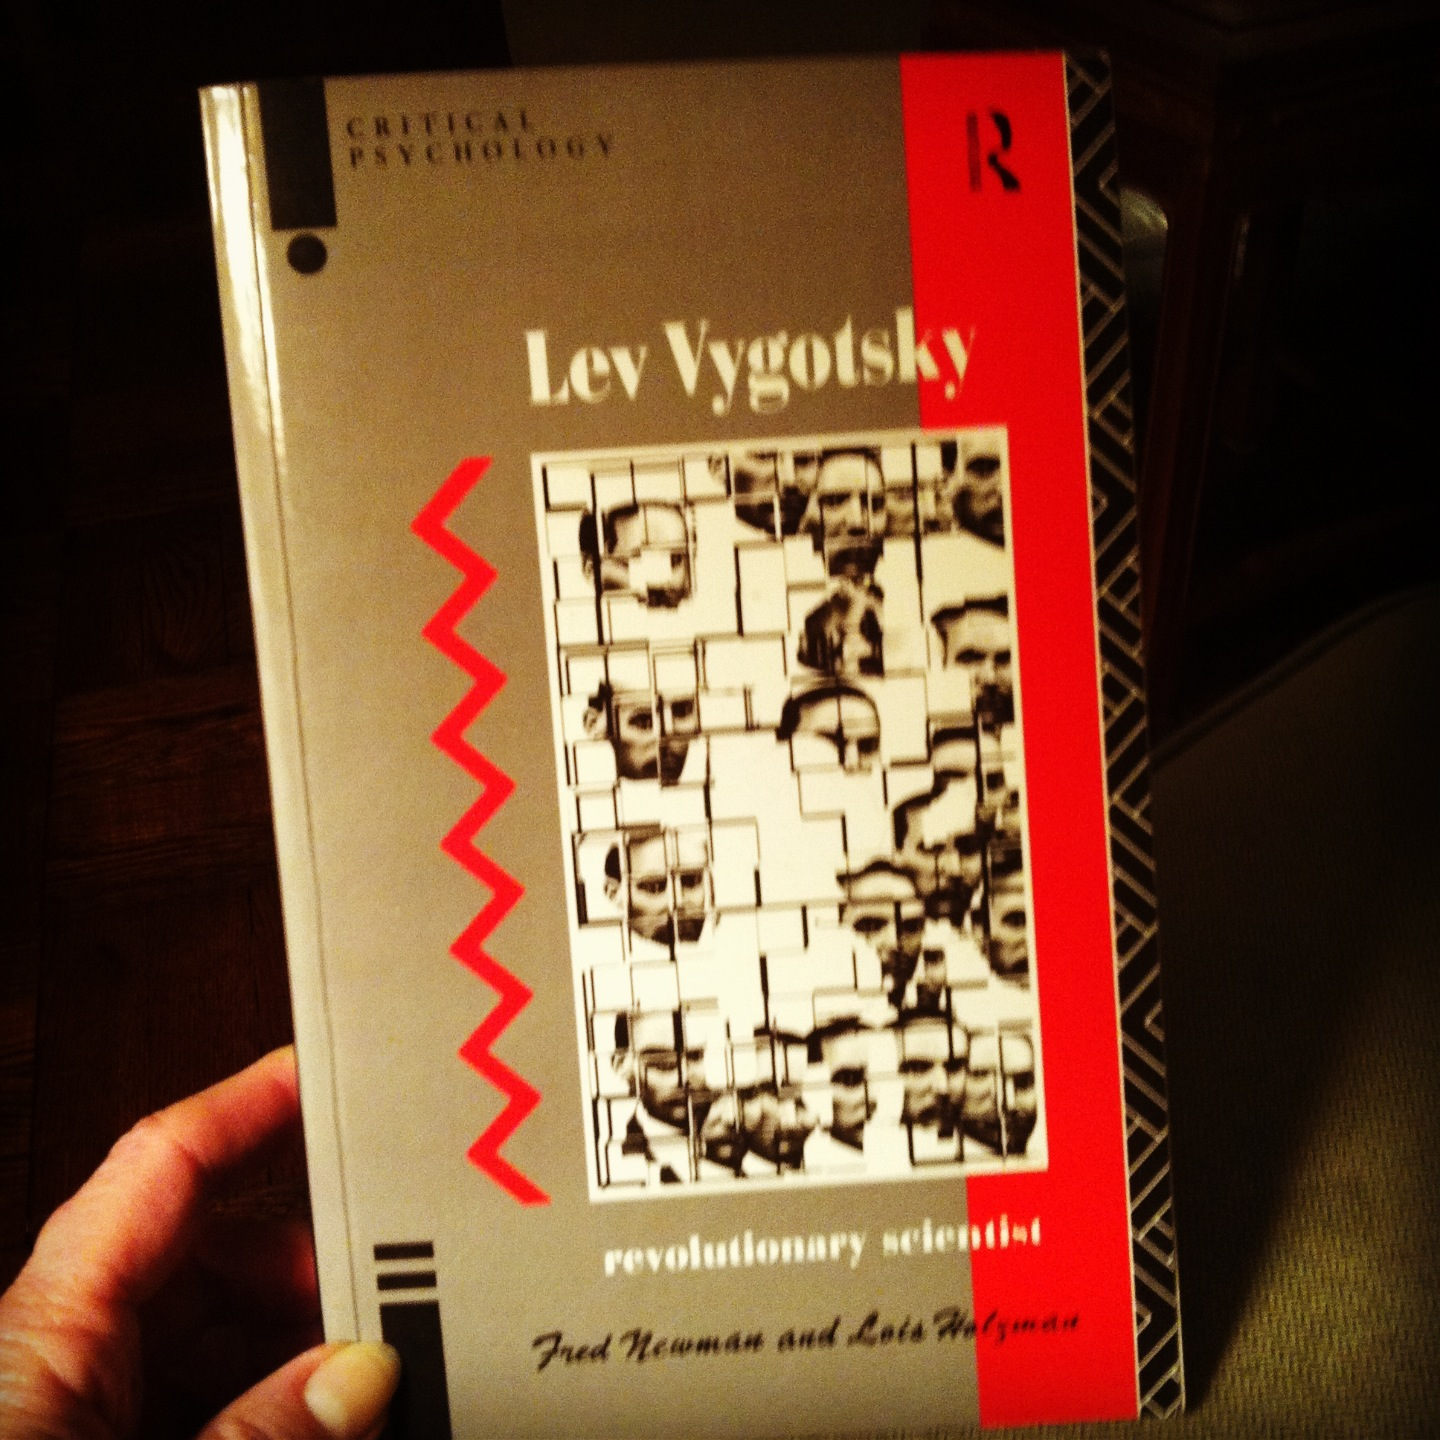 Lev Vygotsky: Revolutionary Scientist (Critical Psychology)